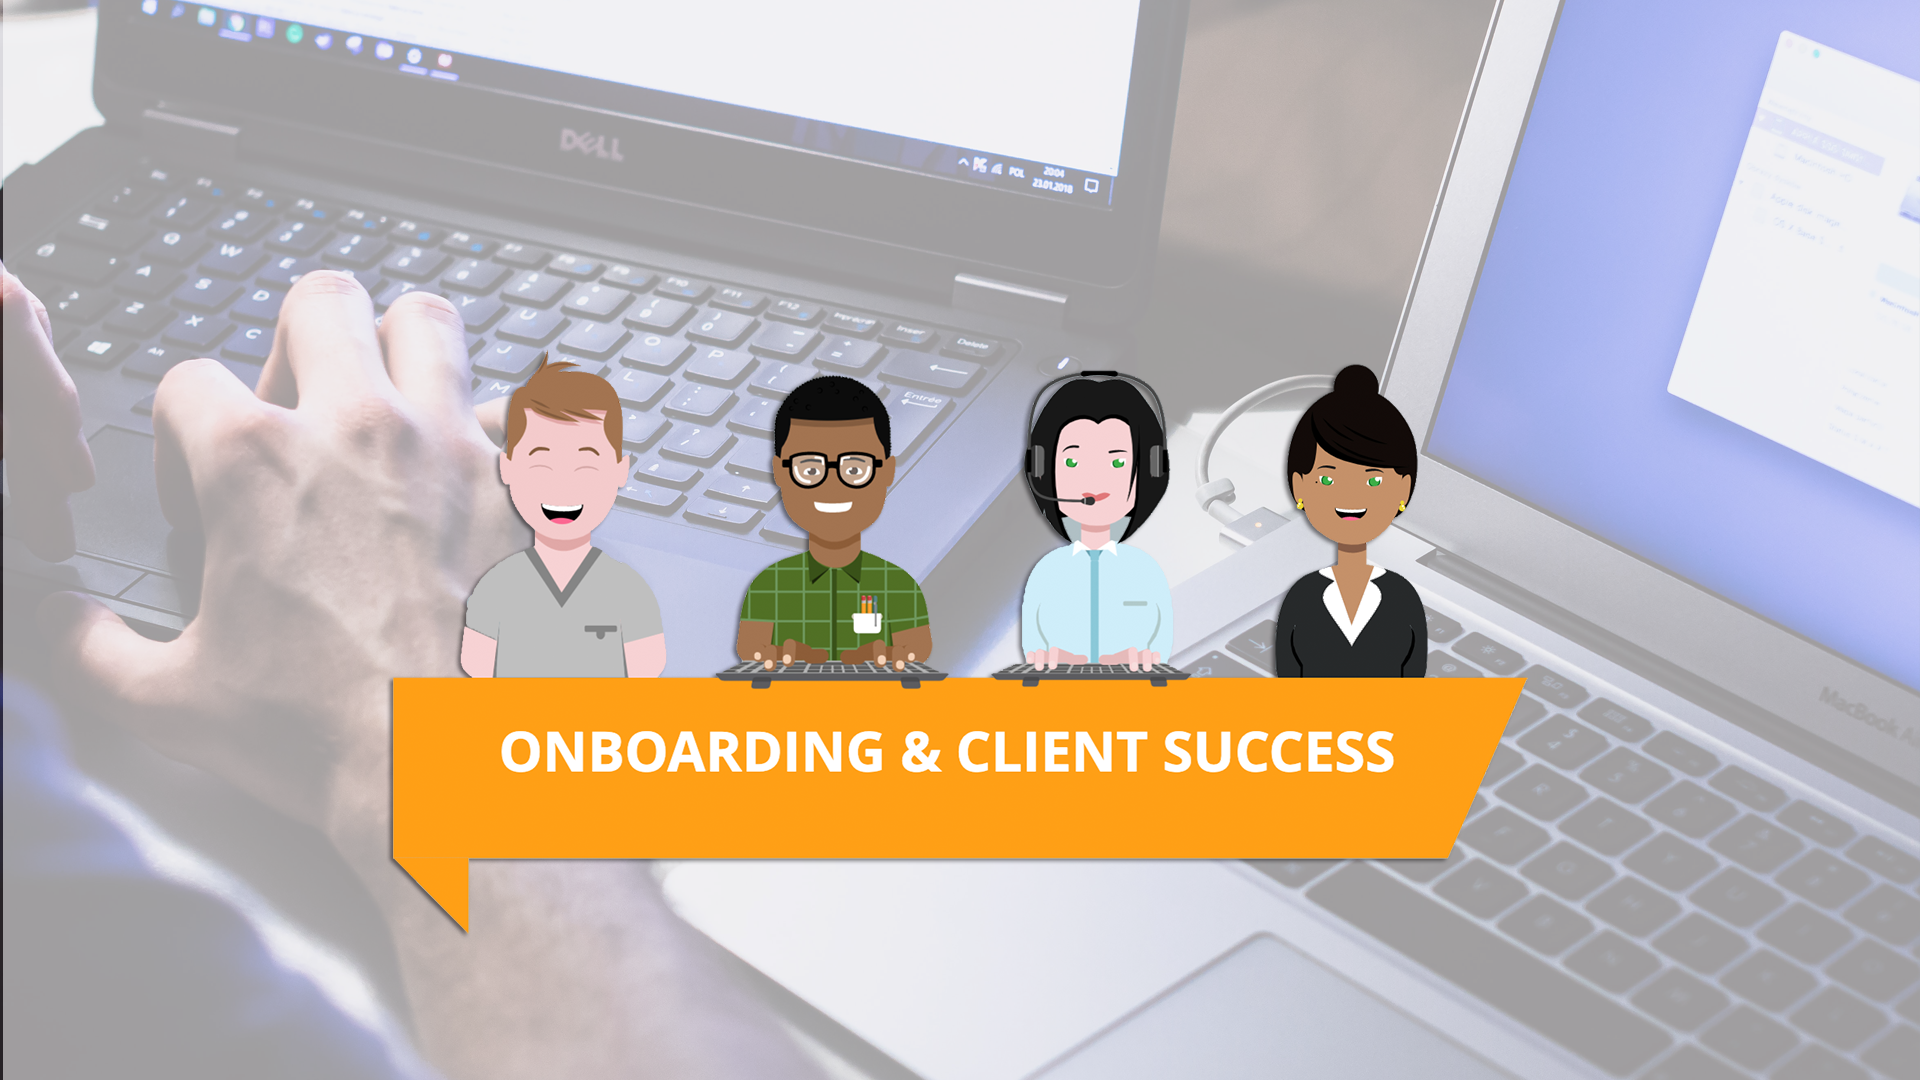 Onboarding & support